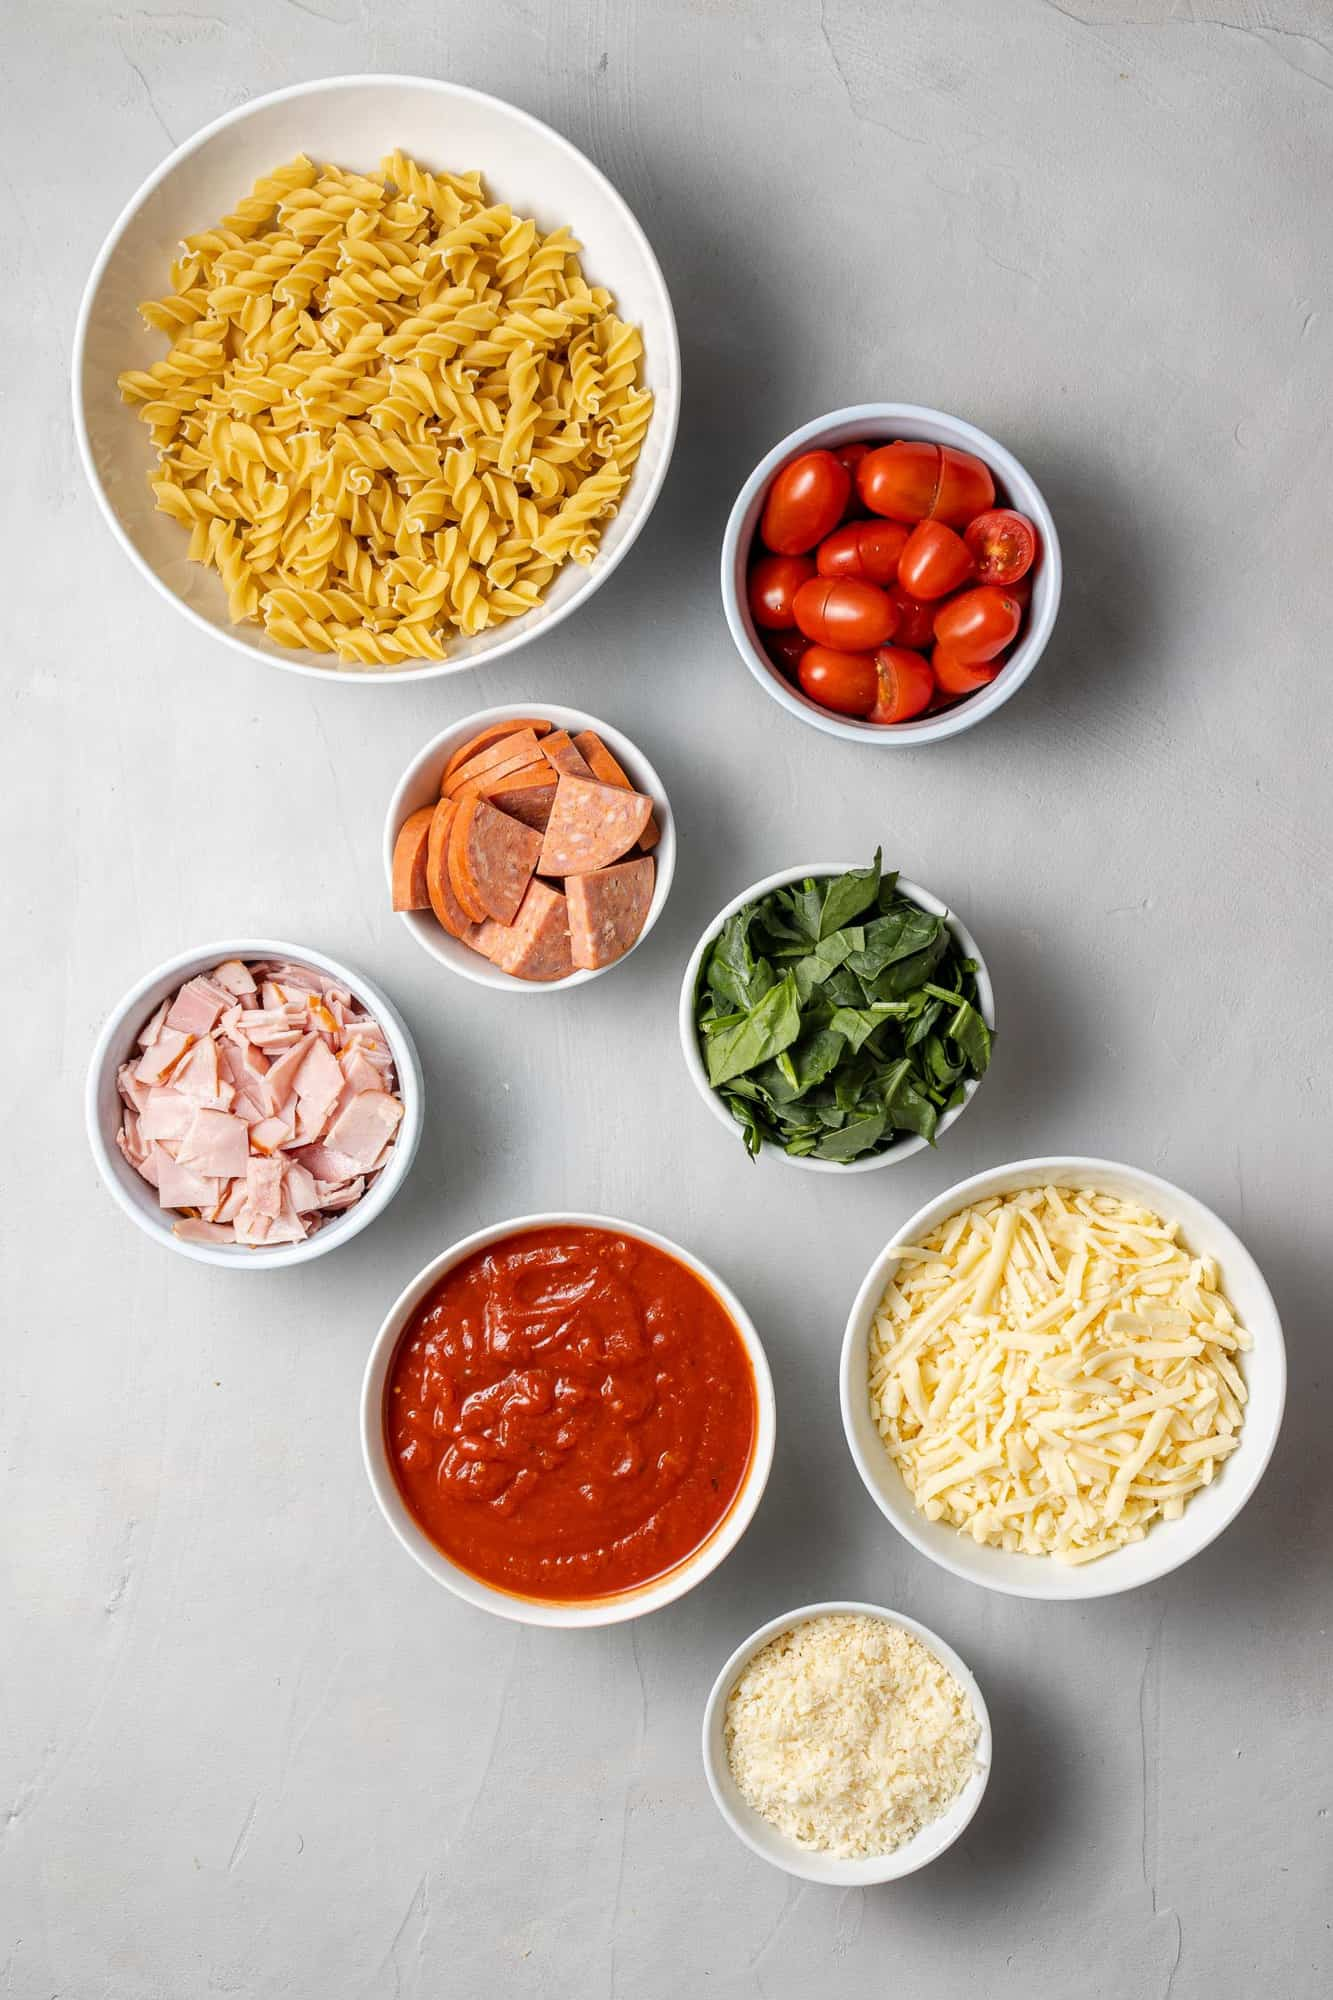 Overhead view of ingredients needed including pasta, tomatoes, ham, pepperoni.